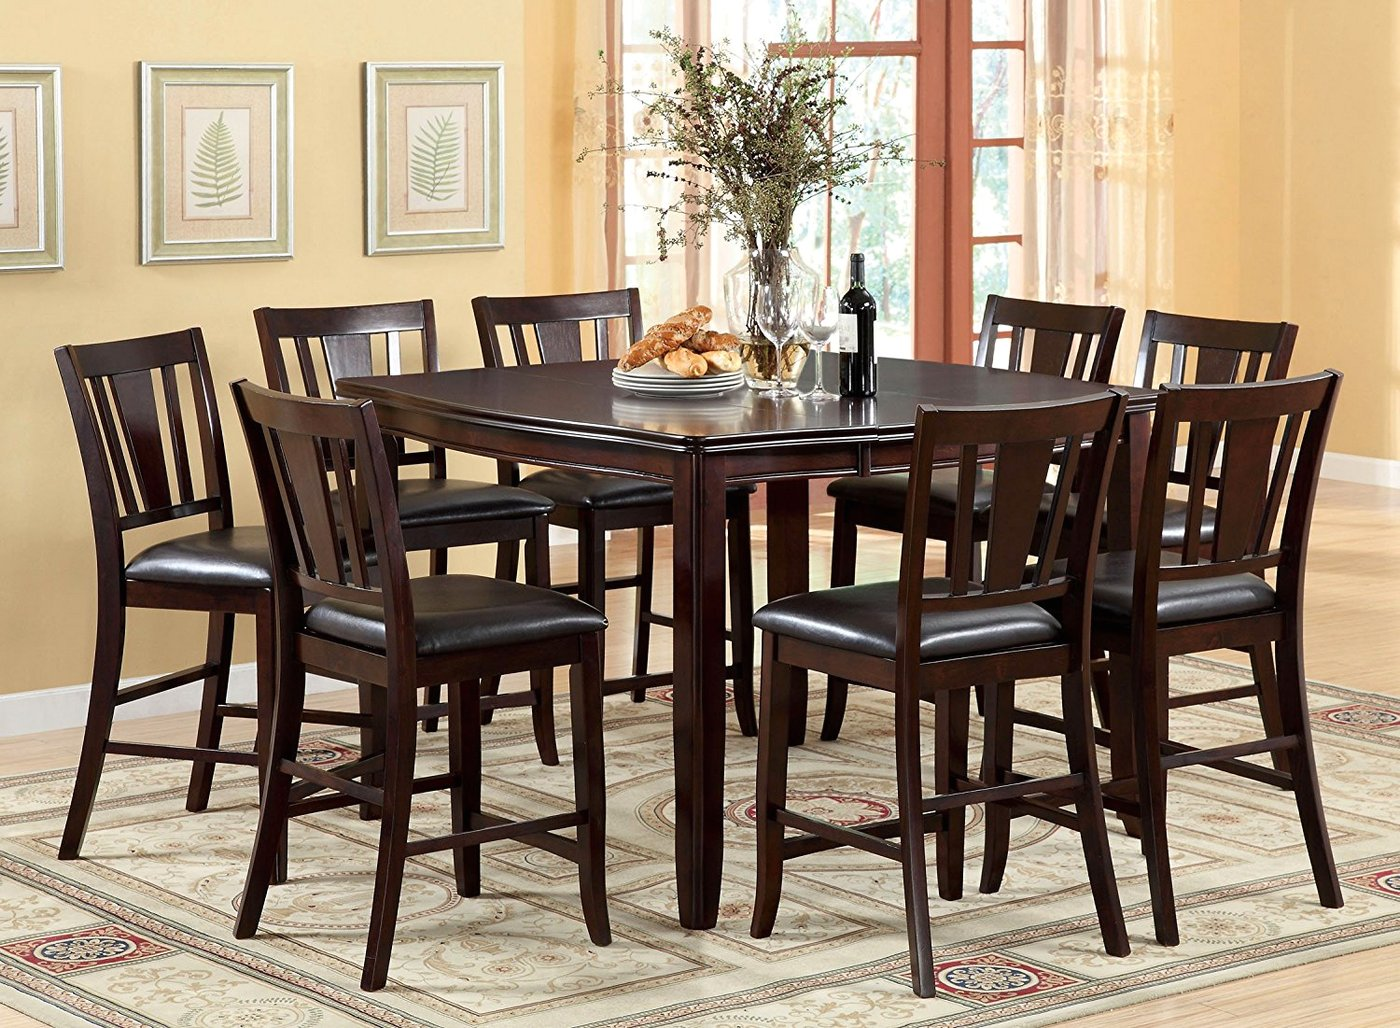 Dining Table Height Cm Edgewood Ii Transitional Espresso Counter Height Dining